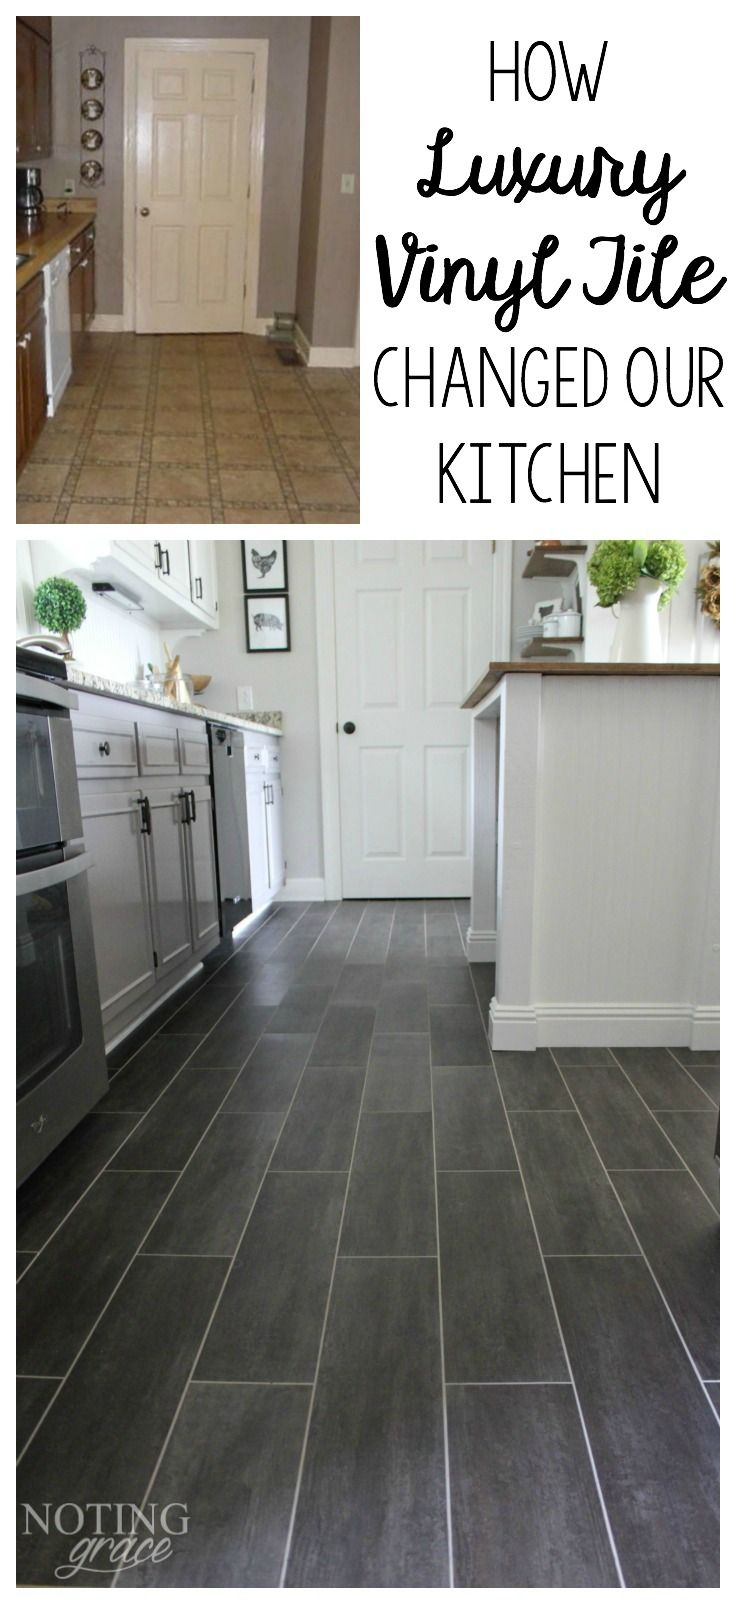 vinyl flooring flooring for kitchen It took only 3 days and to completely transform our kitchen with groutable Luxury Vinyl